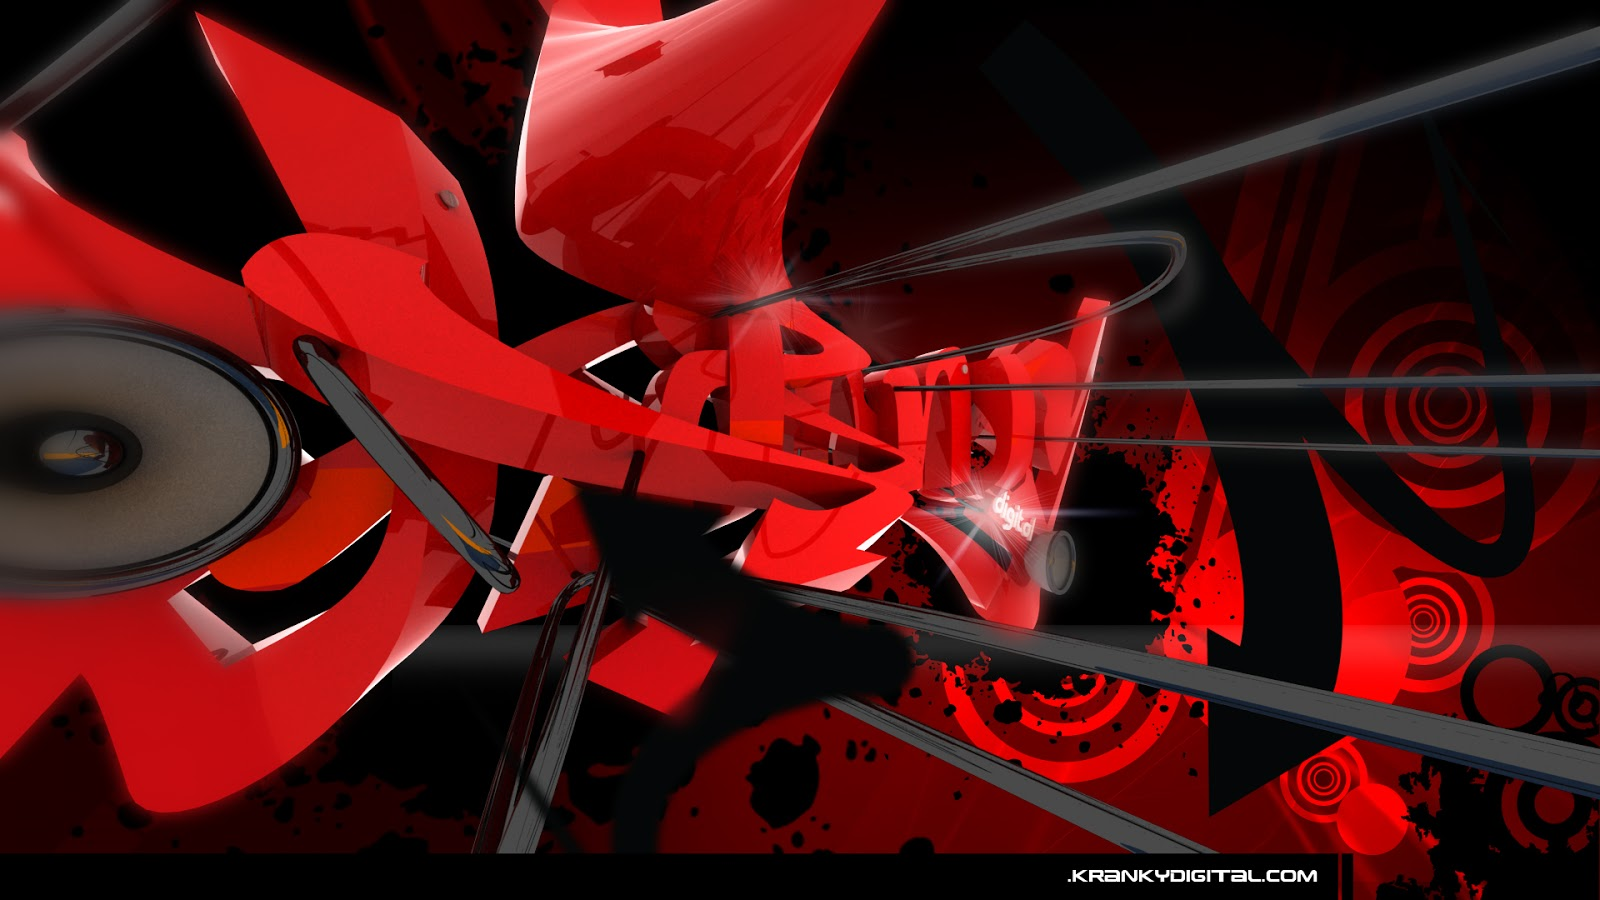 http://2.bp.blogspot.com/-Mr9D7gyY0qg/UJ6yM4CpP6I/AAAAAAAAB2w/k-owtKjVacI/s1600/red-graffiti-wallpaper.jpg